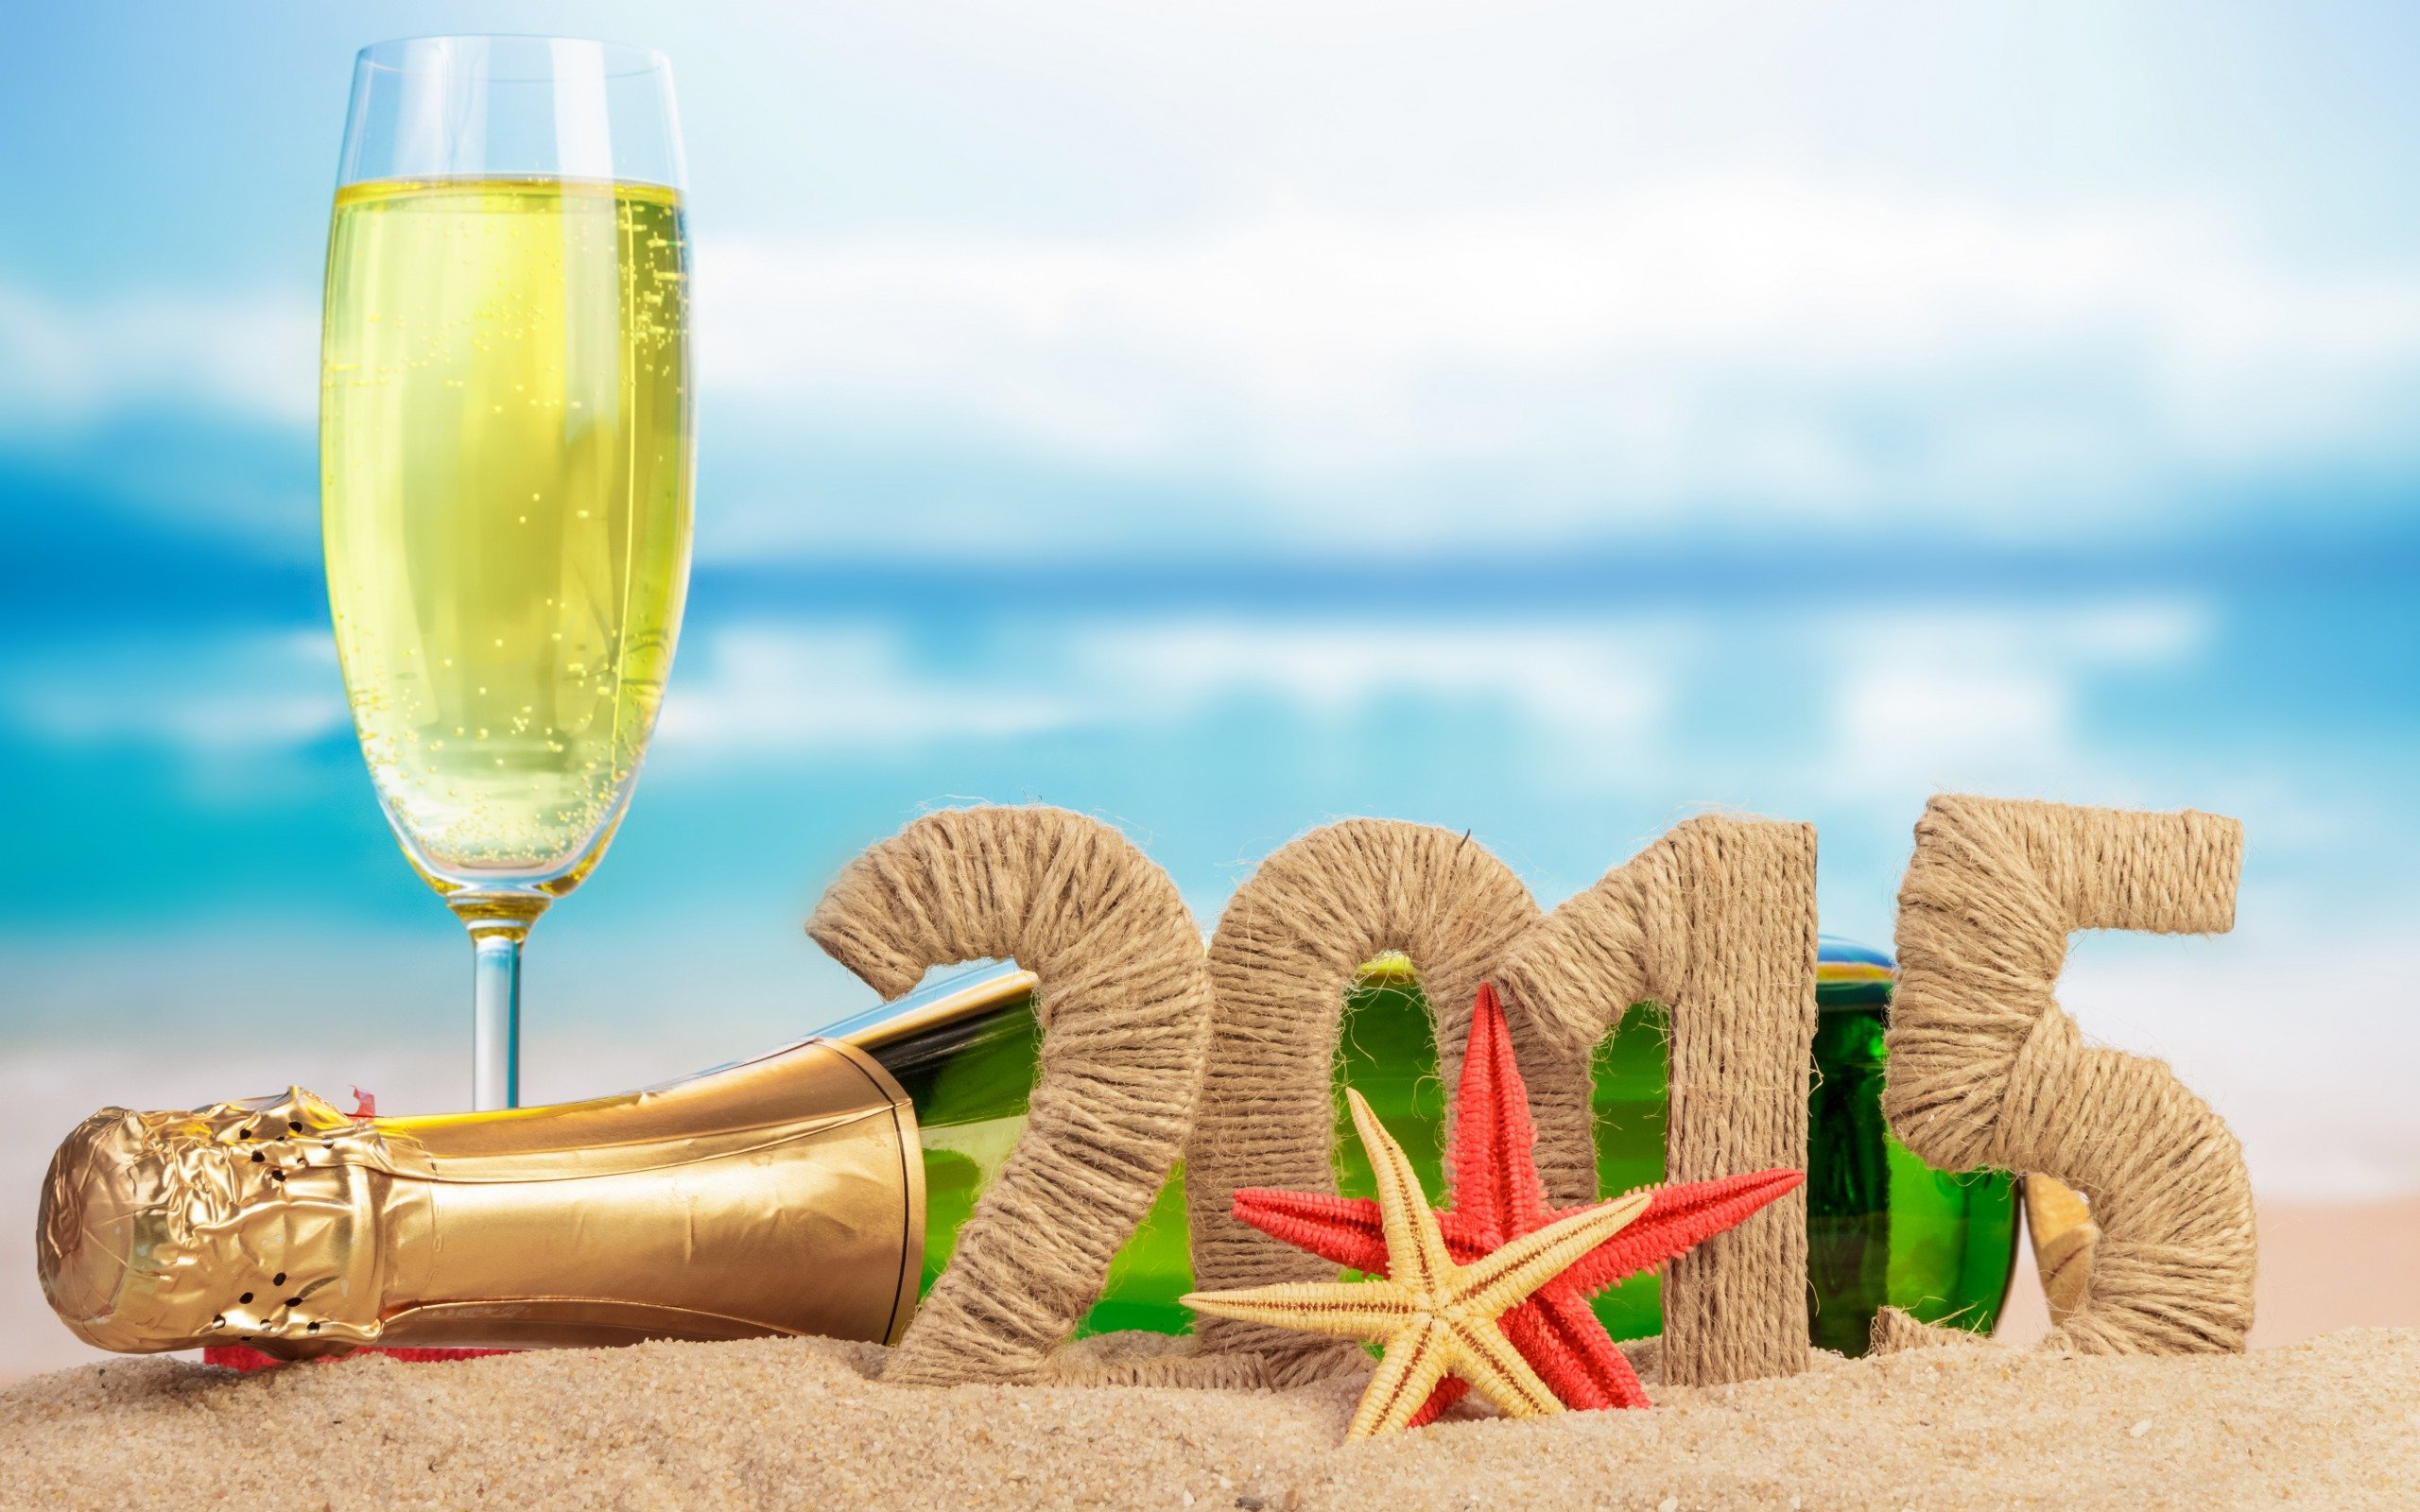 Drink And Sand Beach Happy New Year 2015 Wallpapers Desktop 2560x1600